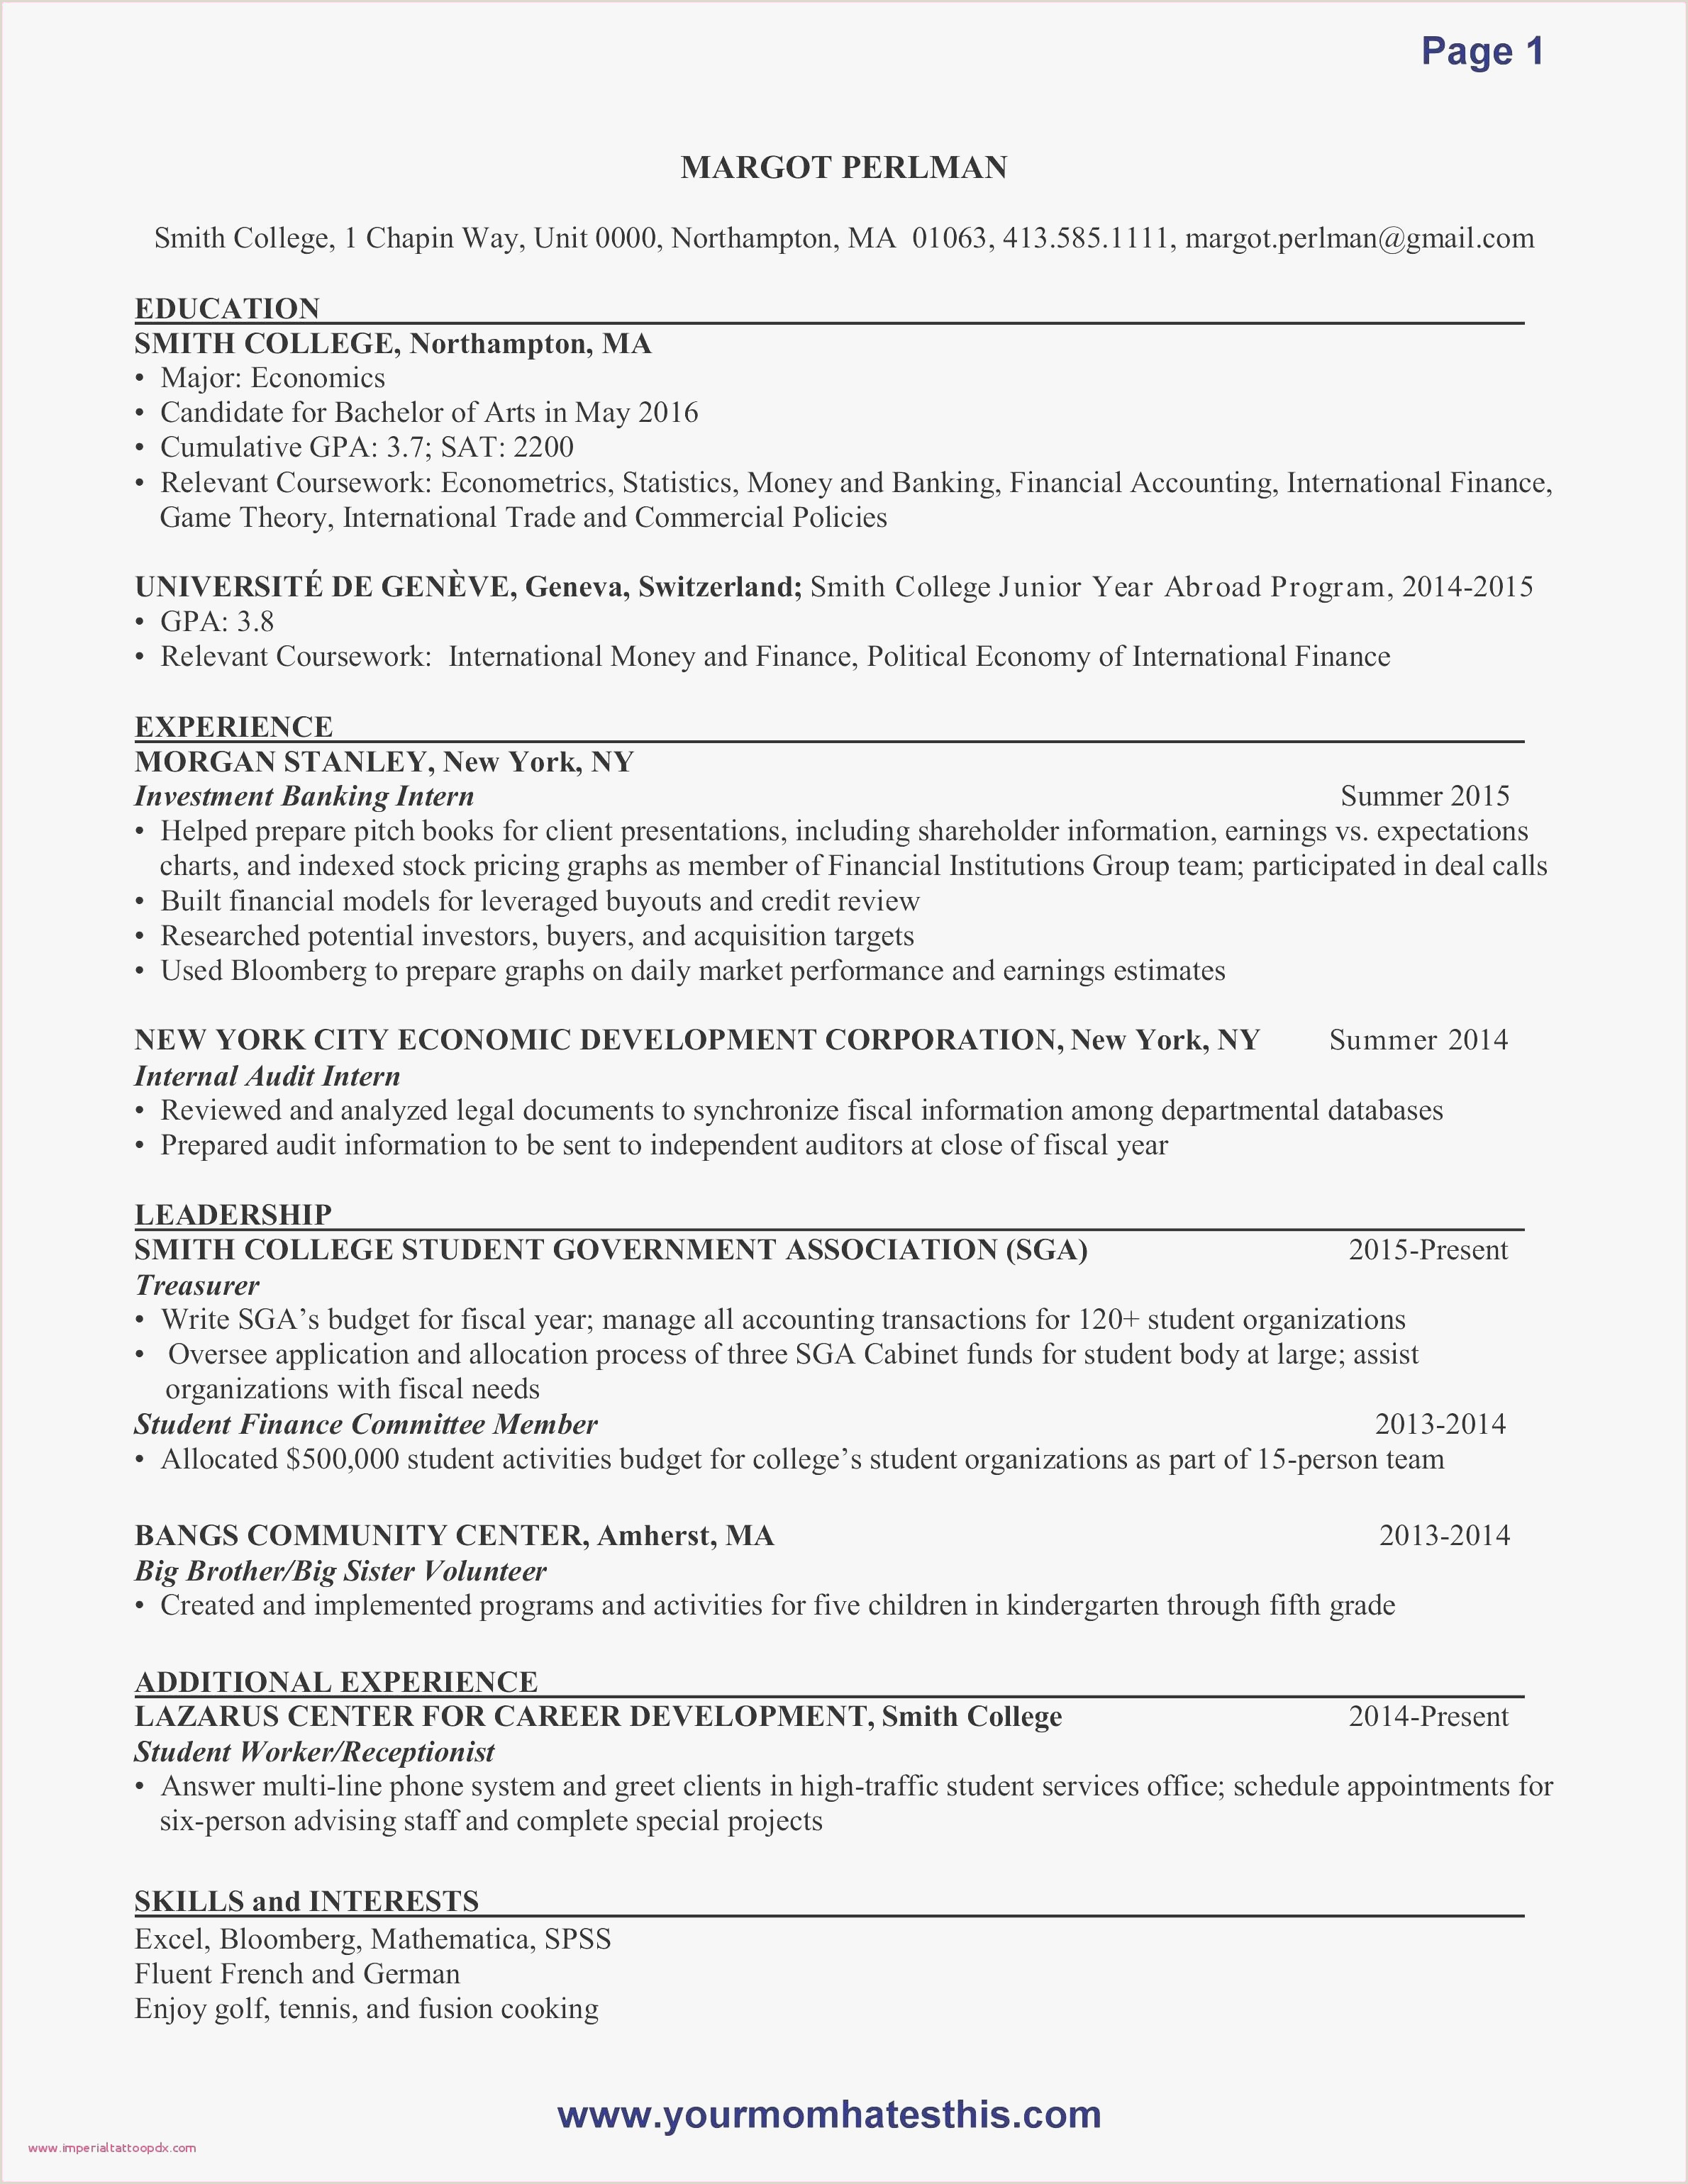 Sample Cover Letter for Finance Internship Law Firm Examples